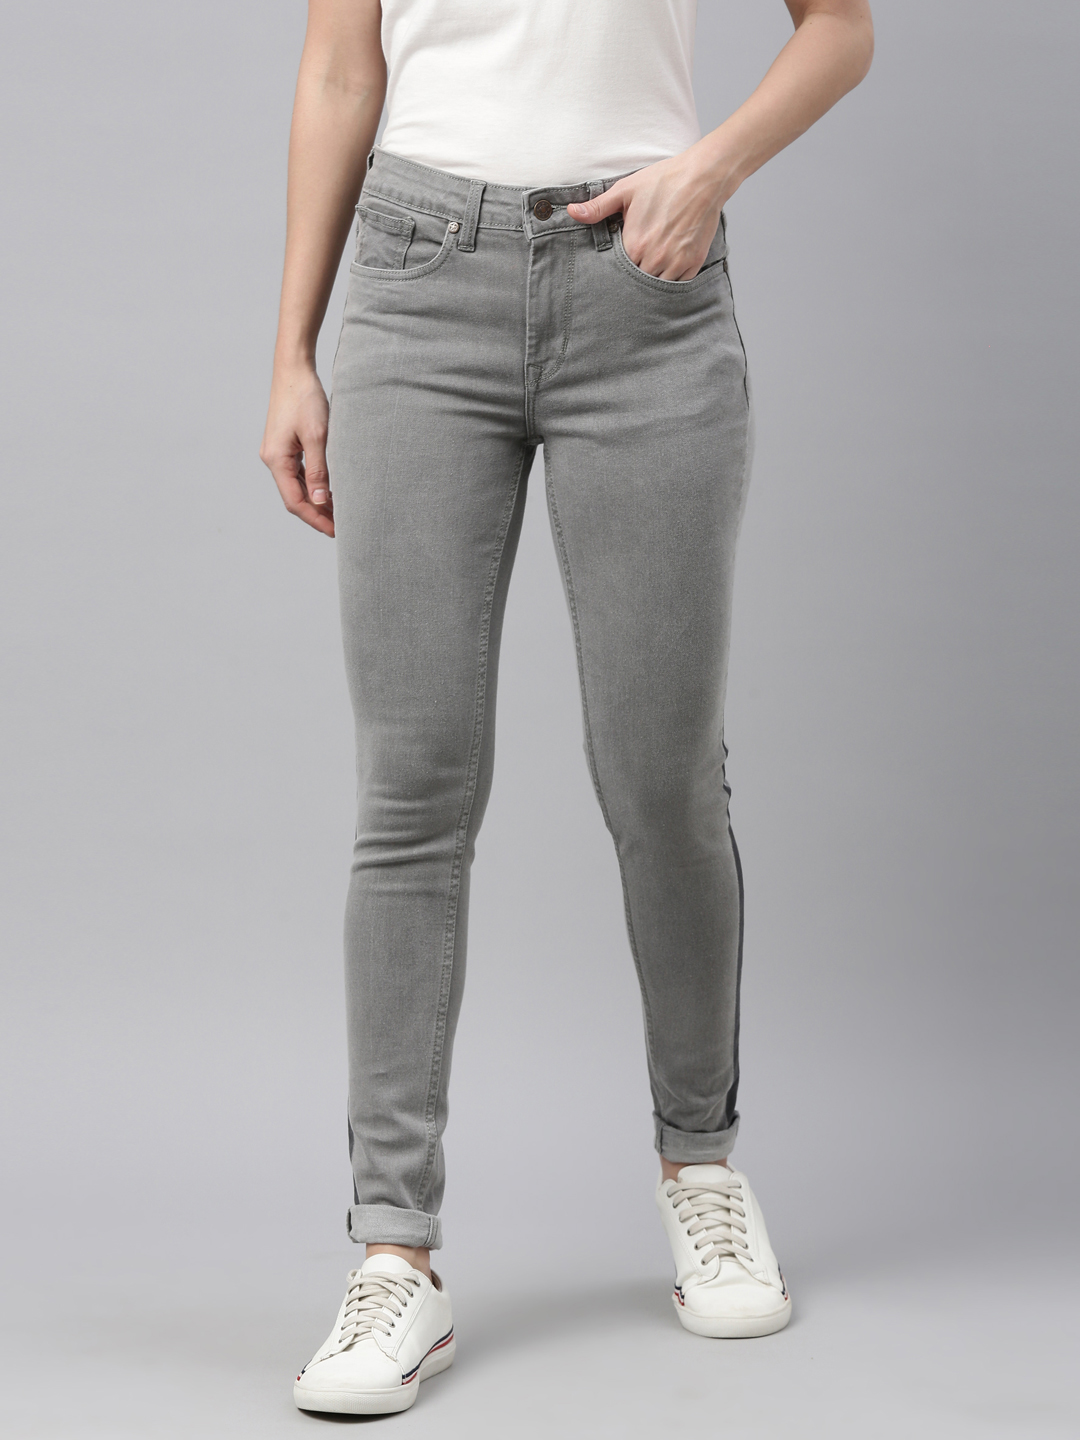 Enviously Young | Enviously Young Women's Grey Jeans